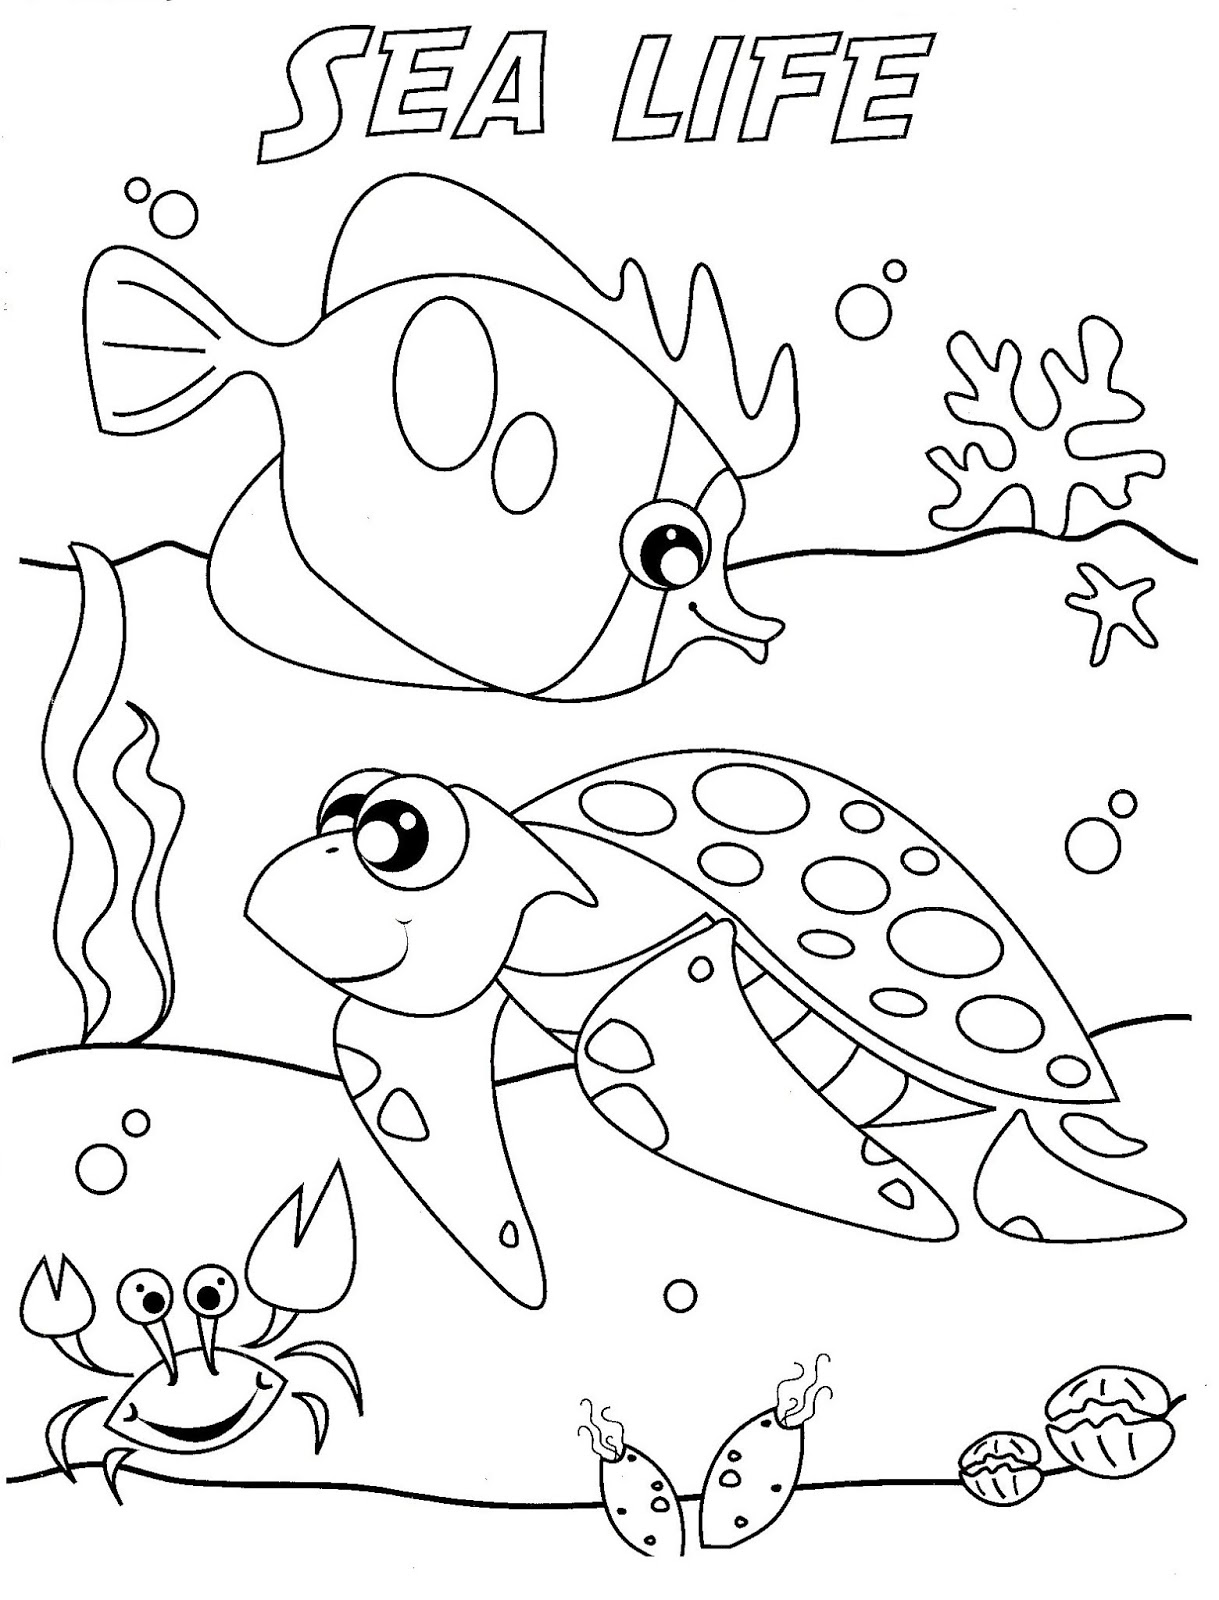 coloring pages of sea life sea creatures drawing at getdrawings free download pages of coloring sea life